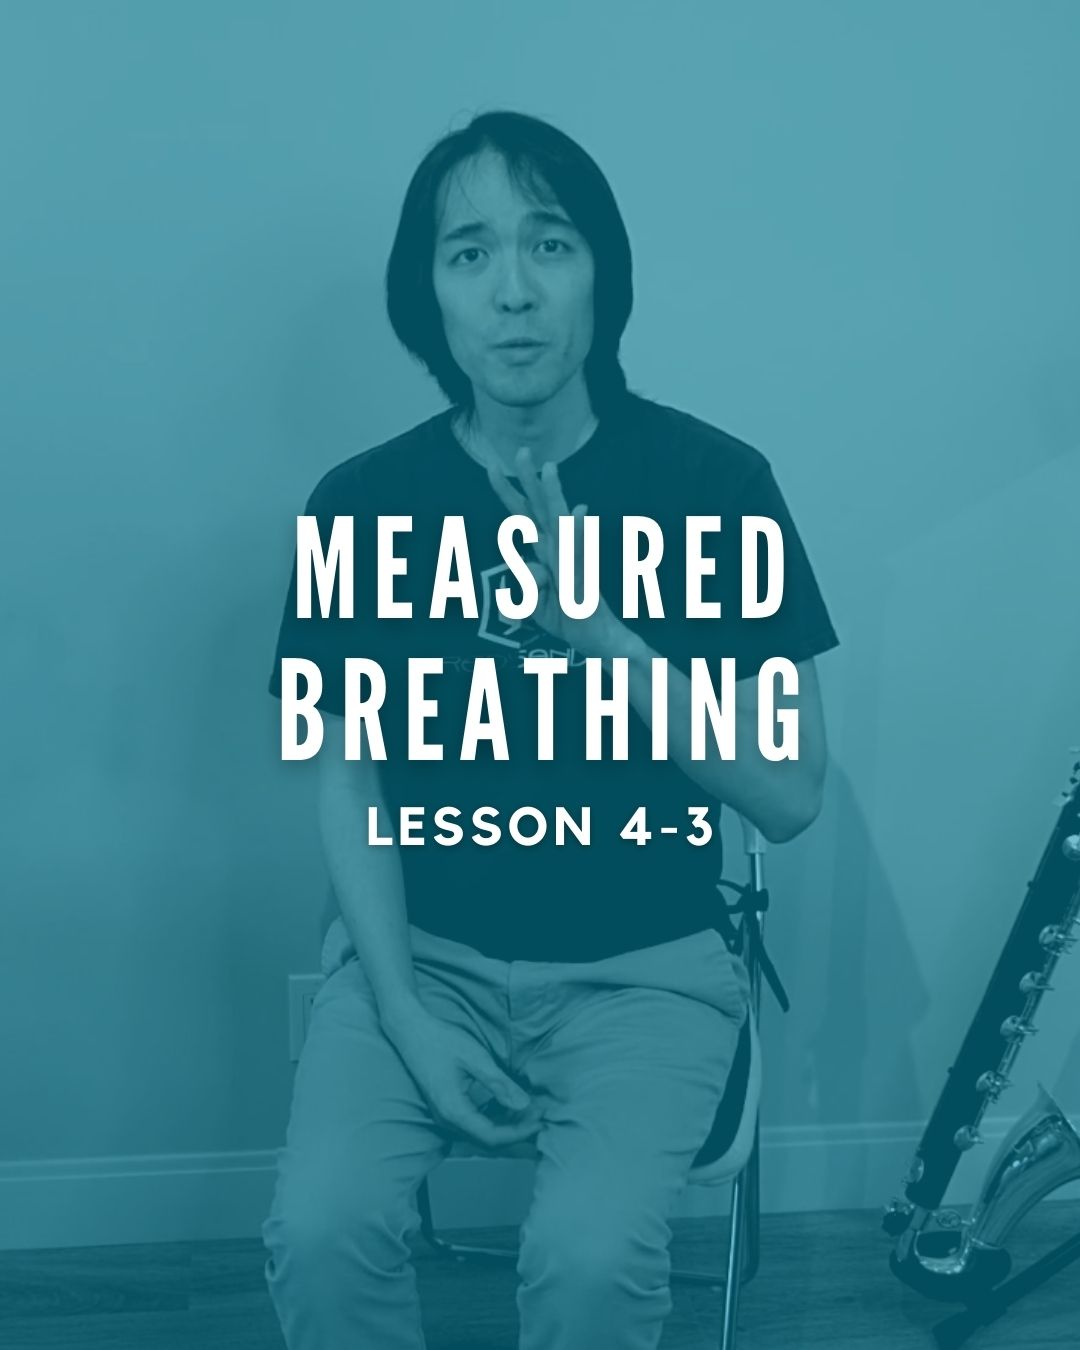 Measured Breathing